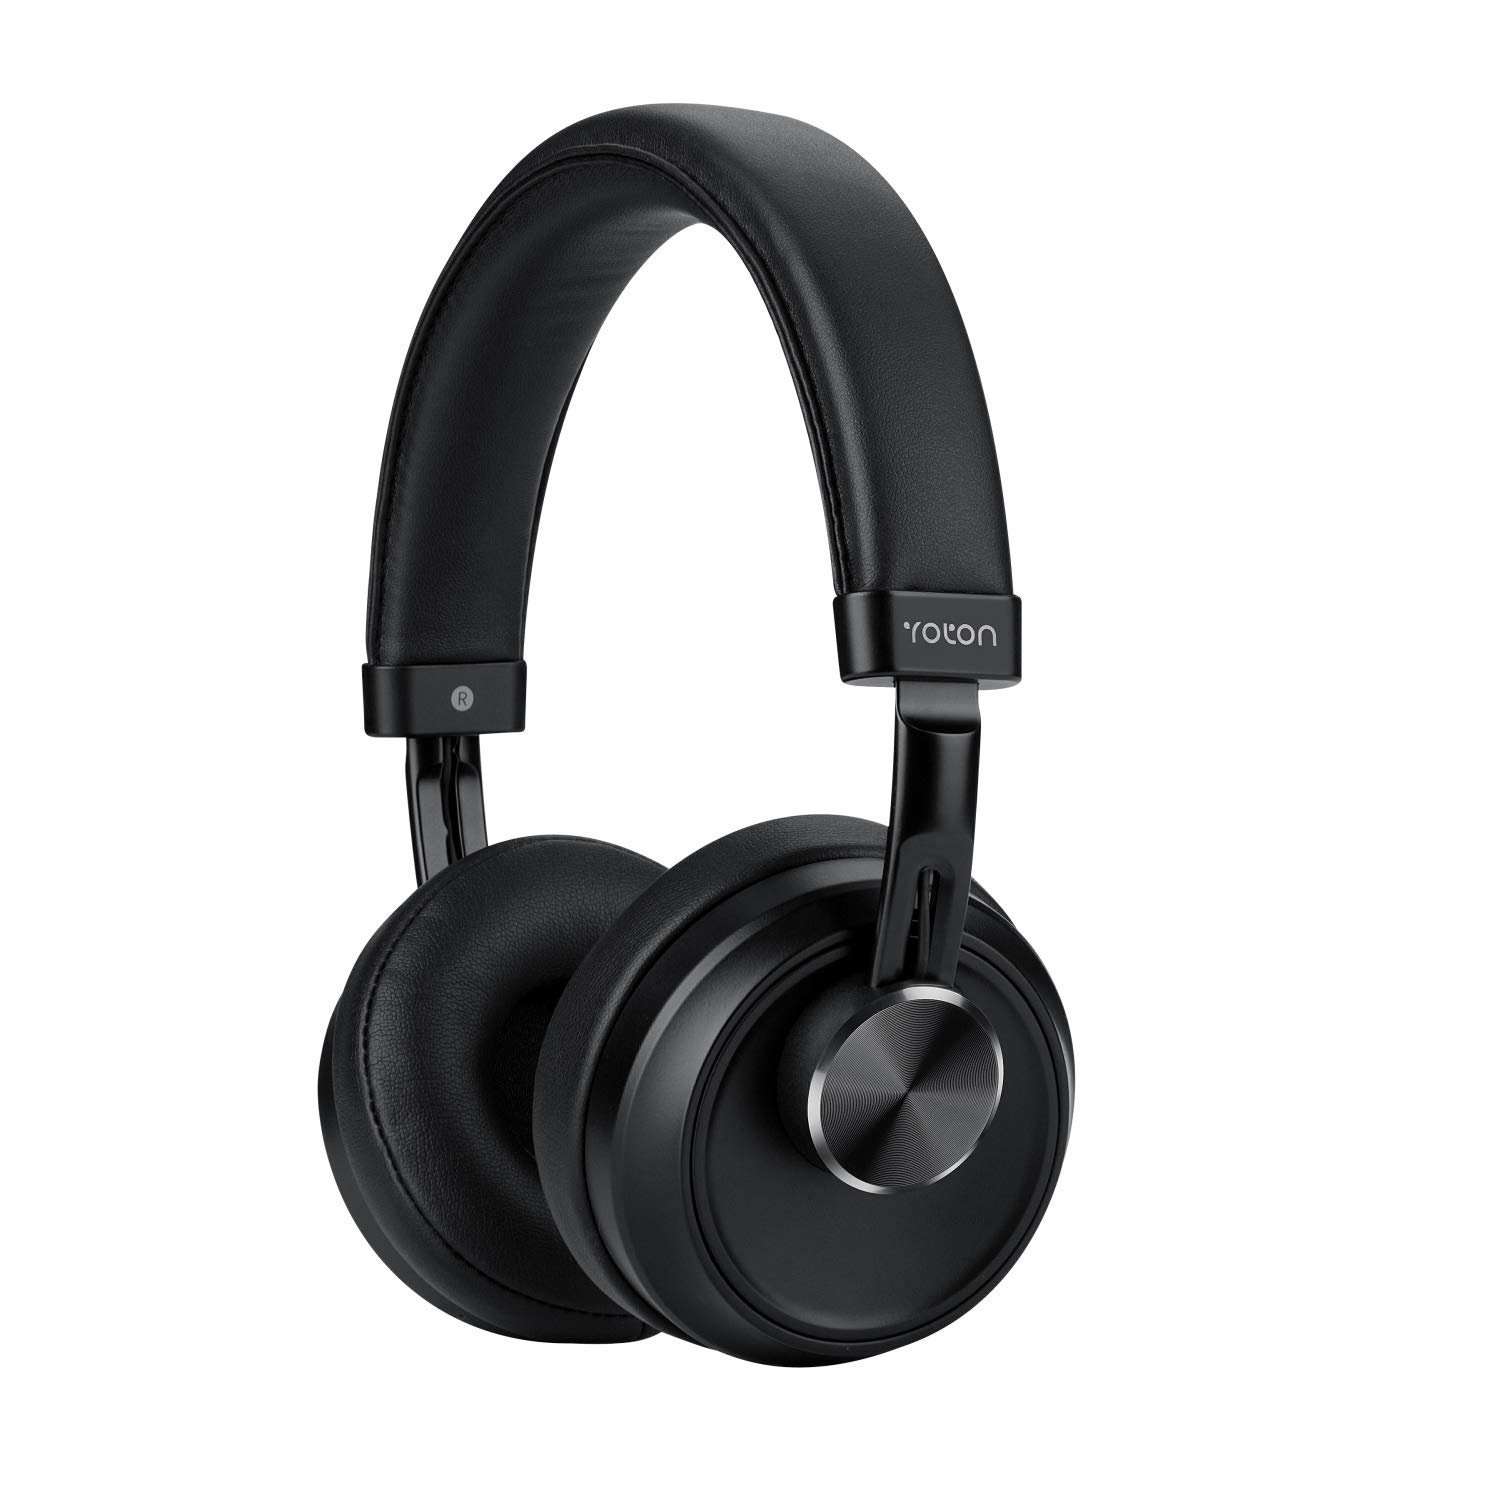 Bluetooth Headphones, Passive Noise Cancelling Headset, Wireless Headphones with Mic Deep Bass HiFi Stereo Headphones,Comfortable Protein Earmuffs for Cell Phones Tablets PC.